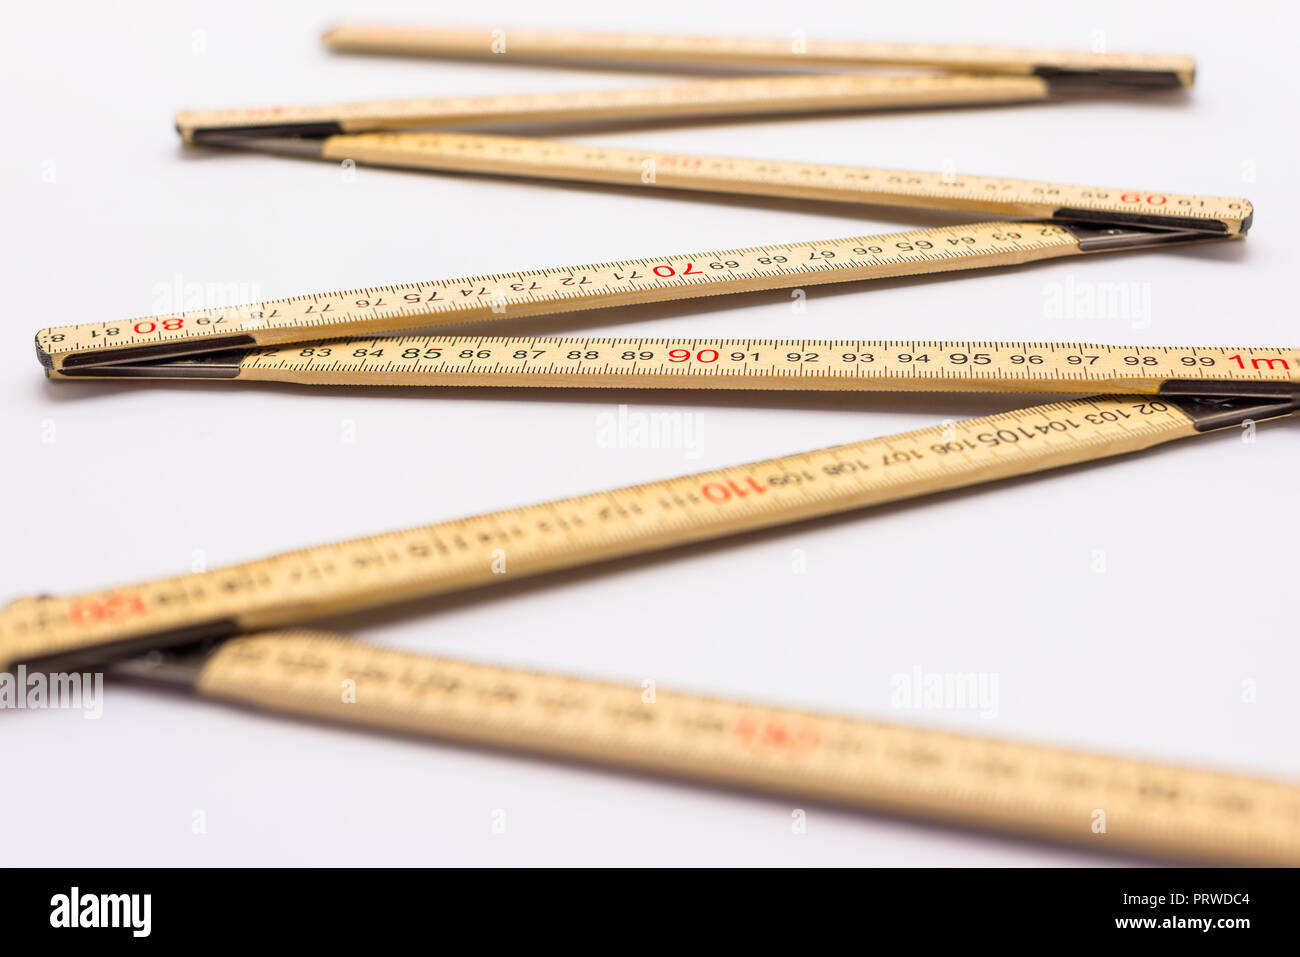 Wooden folding ruler isolated on a white background. - Stock Image